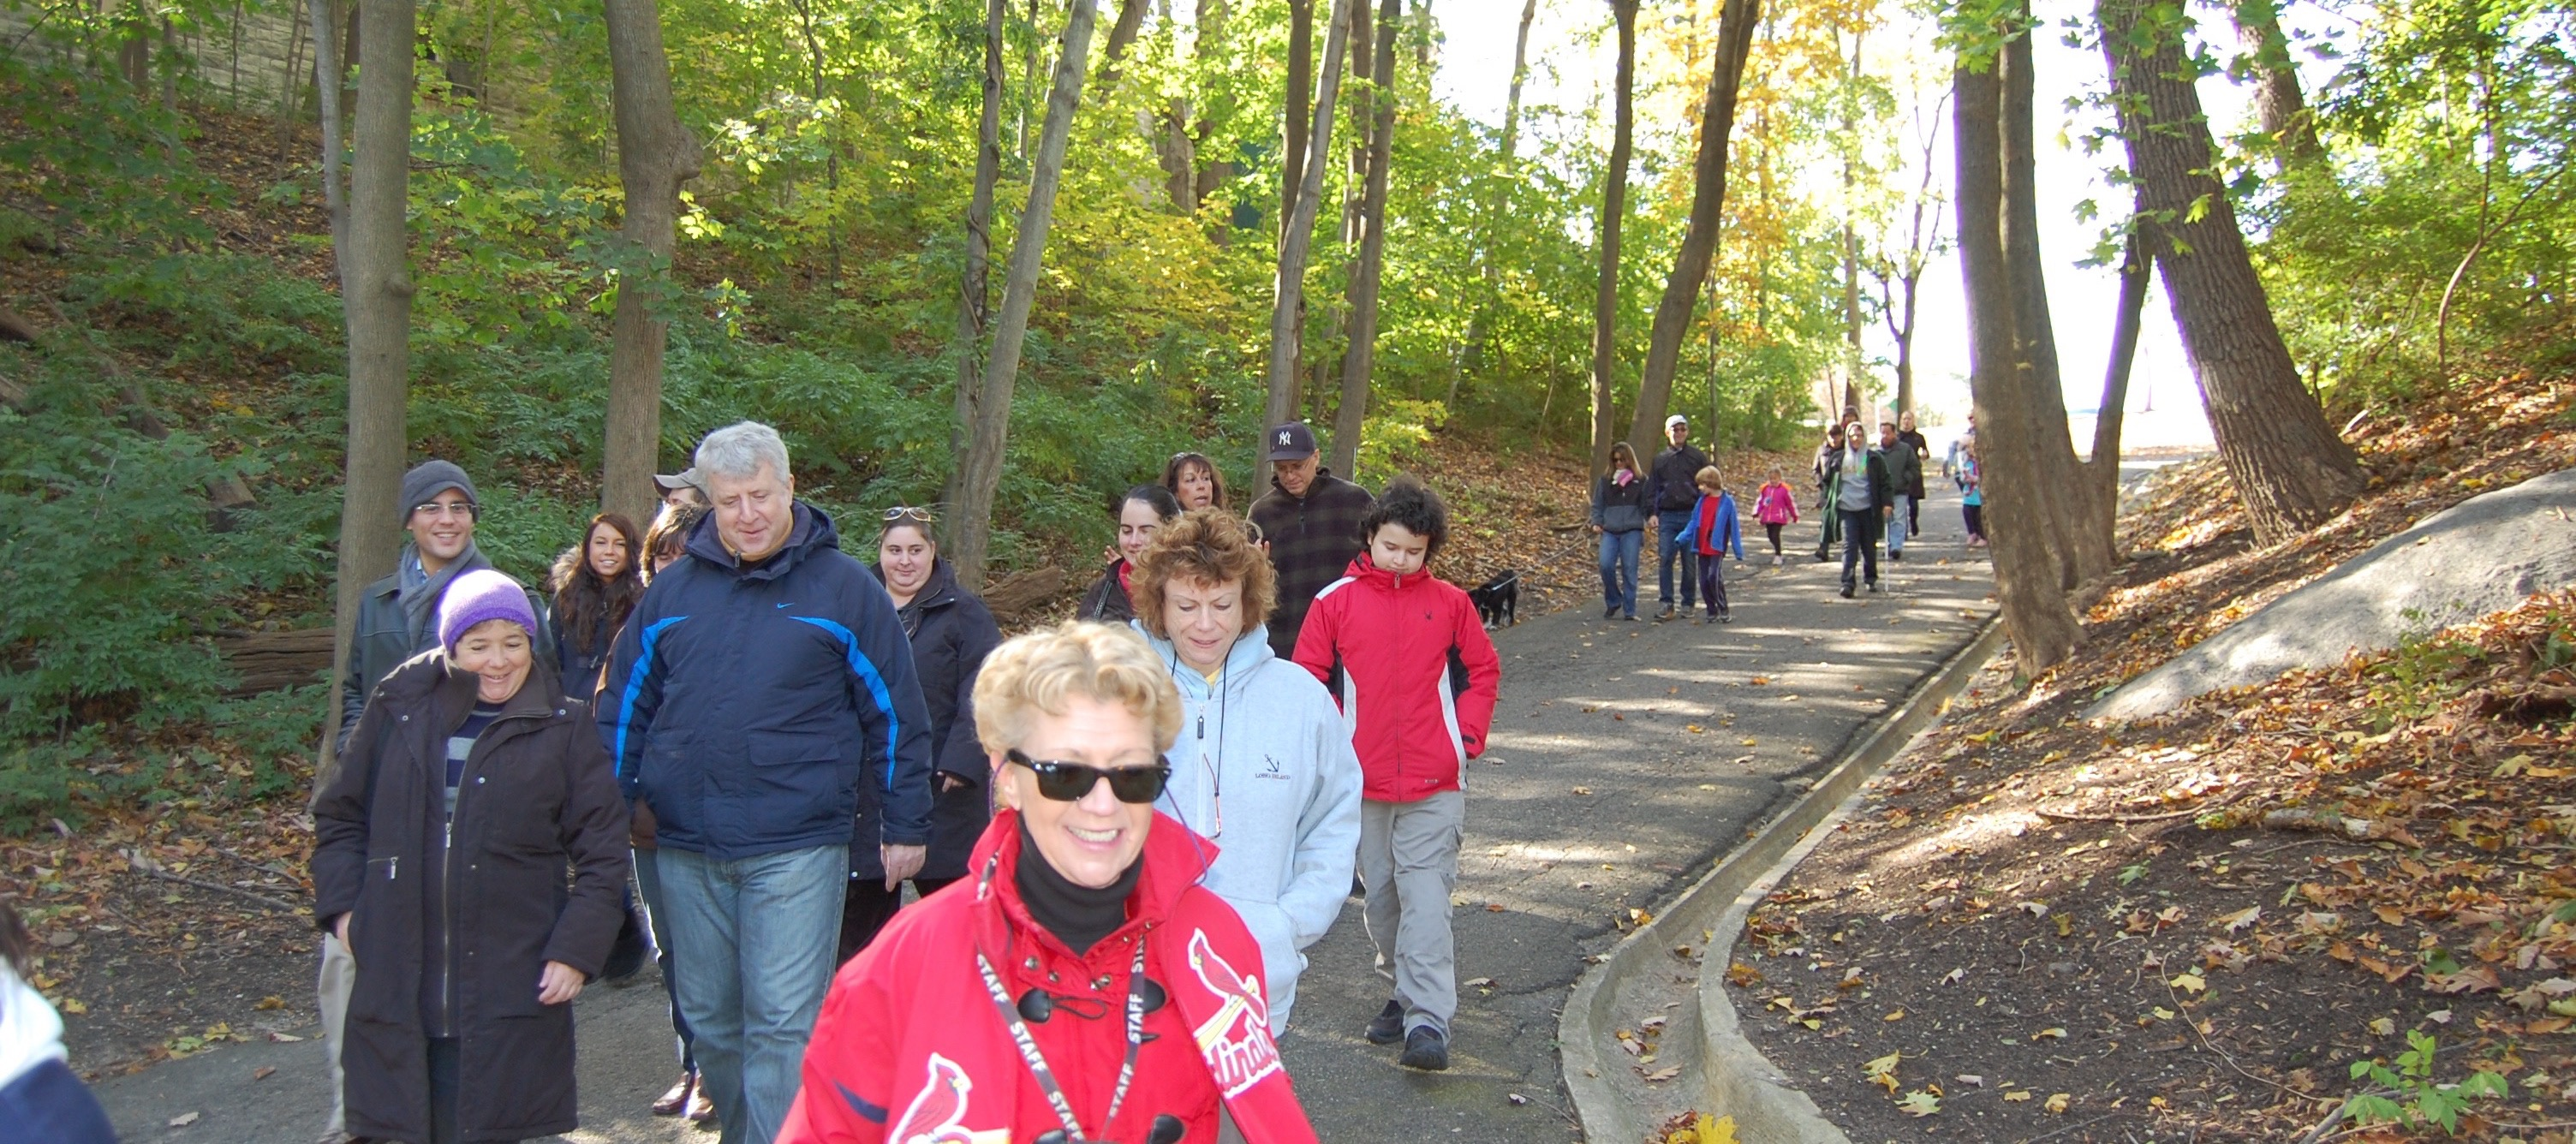 Jayne Leading a group of visitors on a Walk